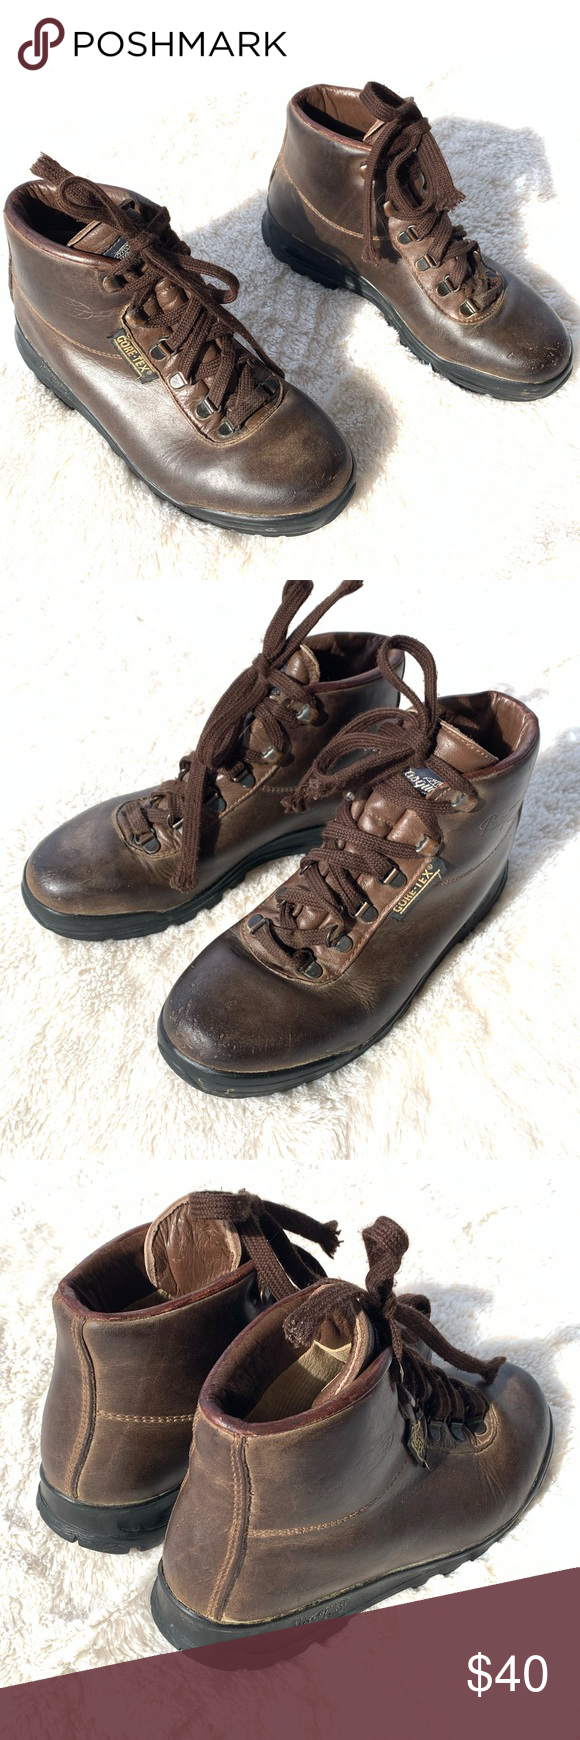 Vasque Gore-Tex Lace Up Hiking Boots Vasque Gore-Tex brown cowhide leather hikin…